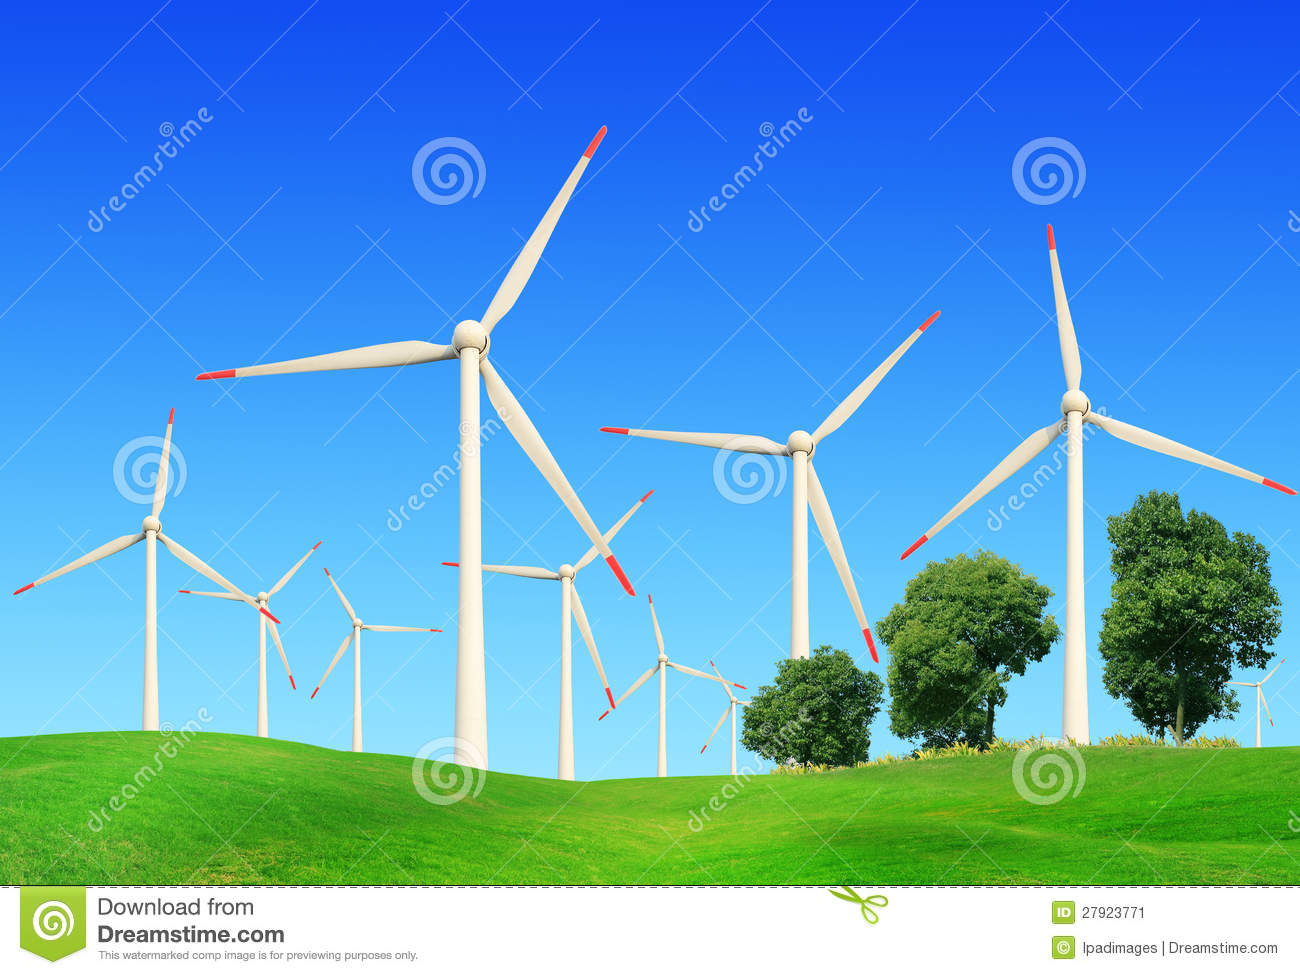 Windmills In Summer Landscape Stock Image - Image of